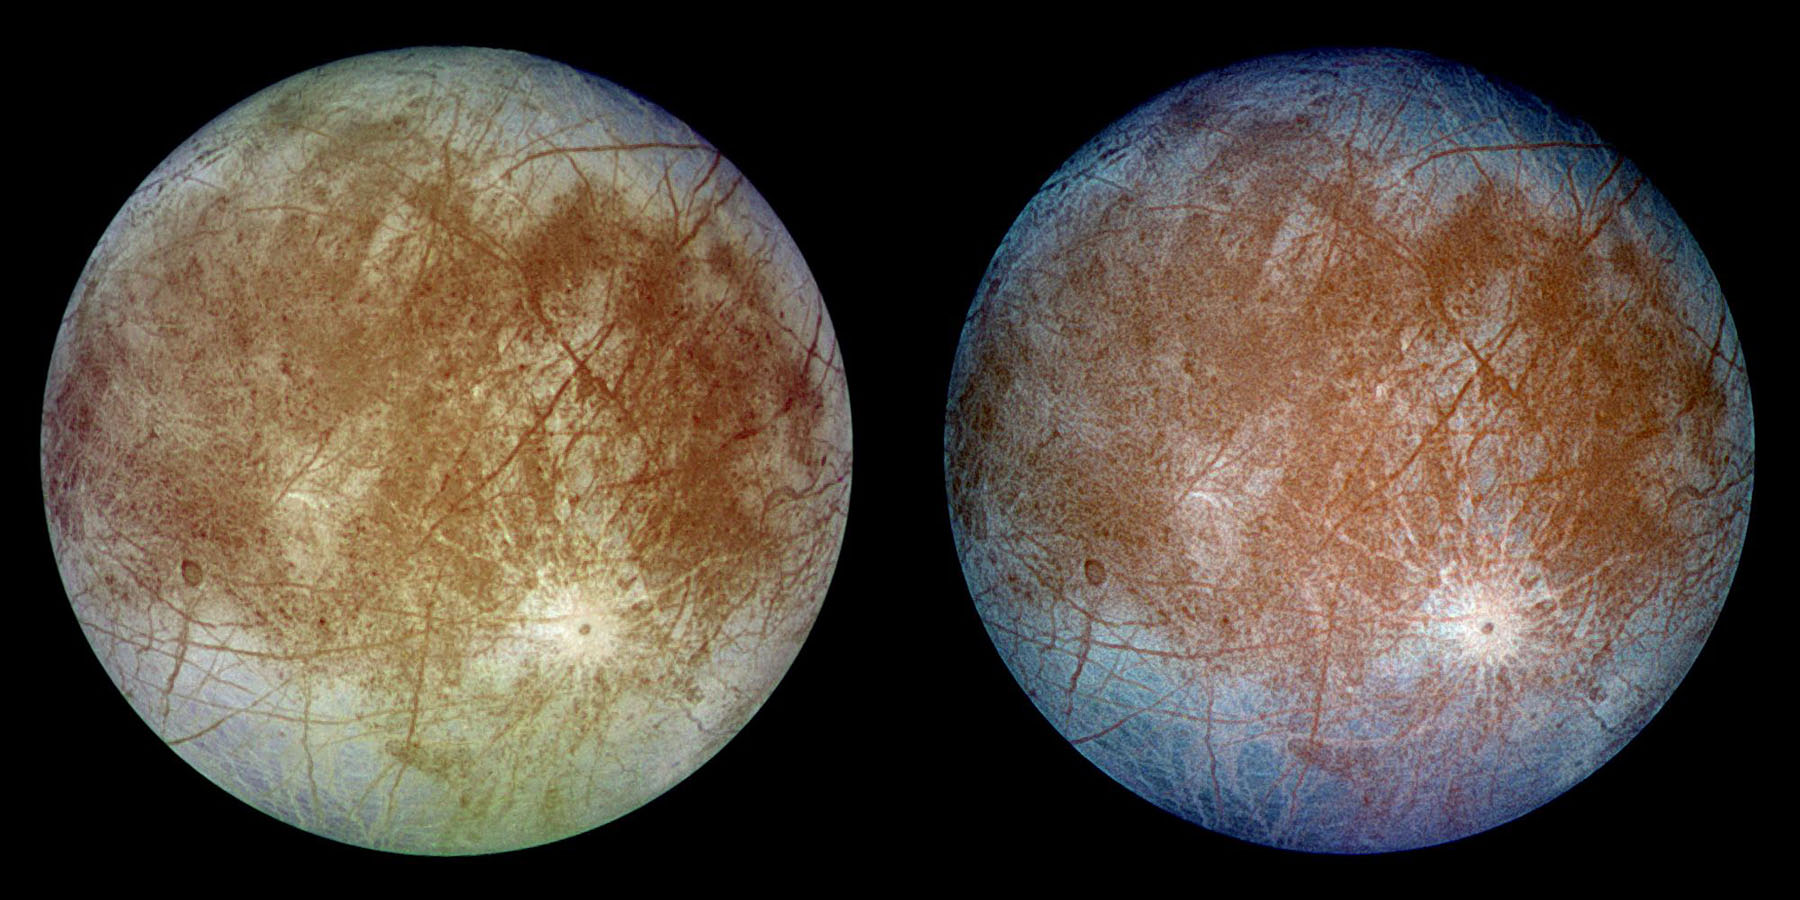 This image, taken on September 7, 1996 by NASA's Galileo orbiter, shows two views of the trailing hemisphere of Jupiter's ice-covered satellite, Europa. Europa is about 3,160 kilometers (1,950 miles) in diameter, or about the size of Earth's moon.